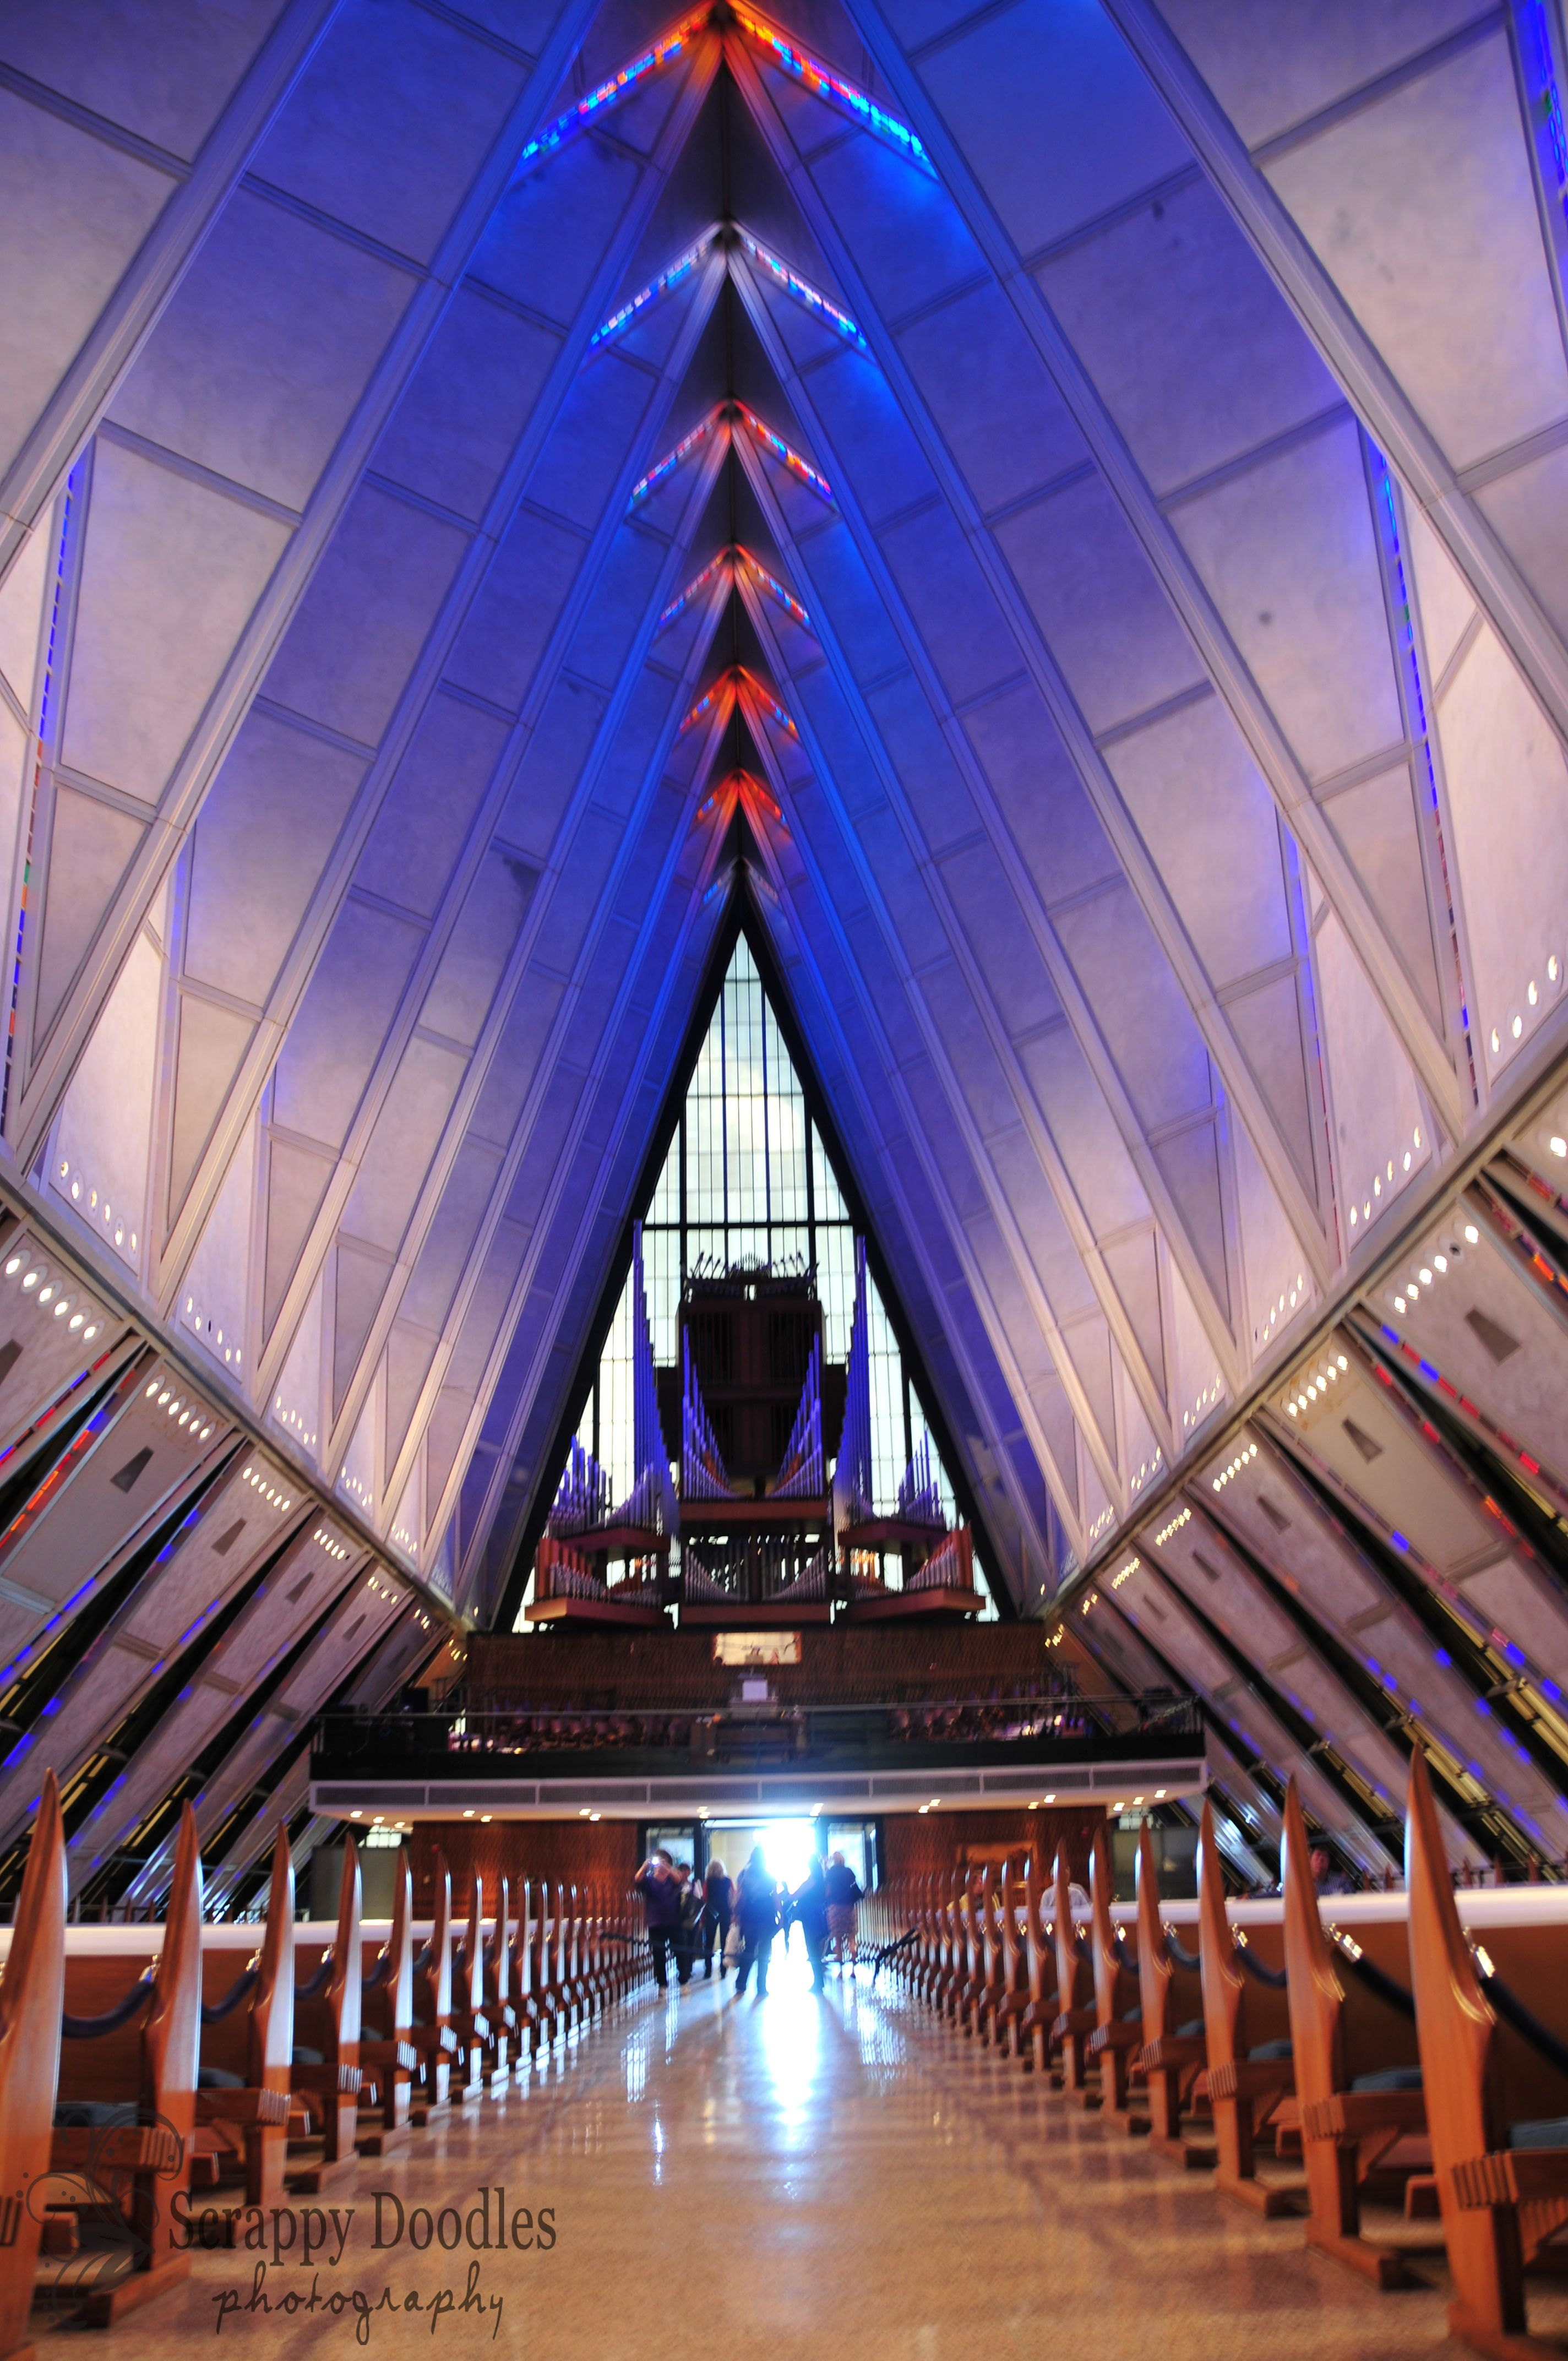 Inside the Air Force Academy Chapel